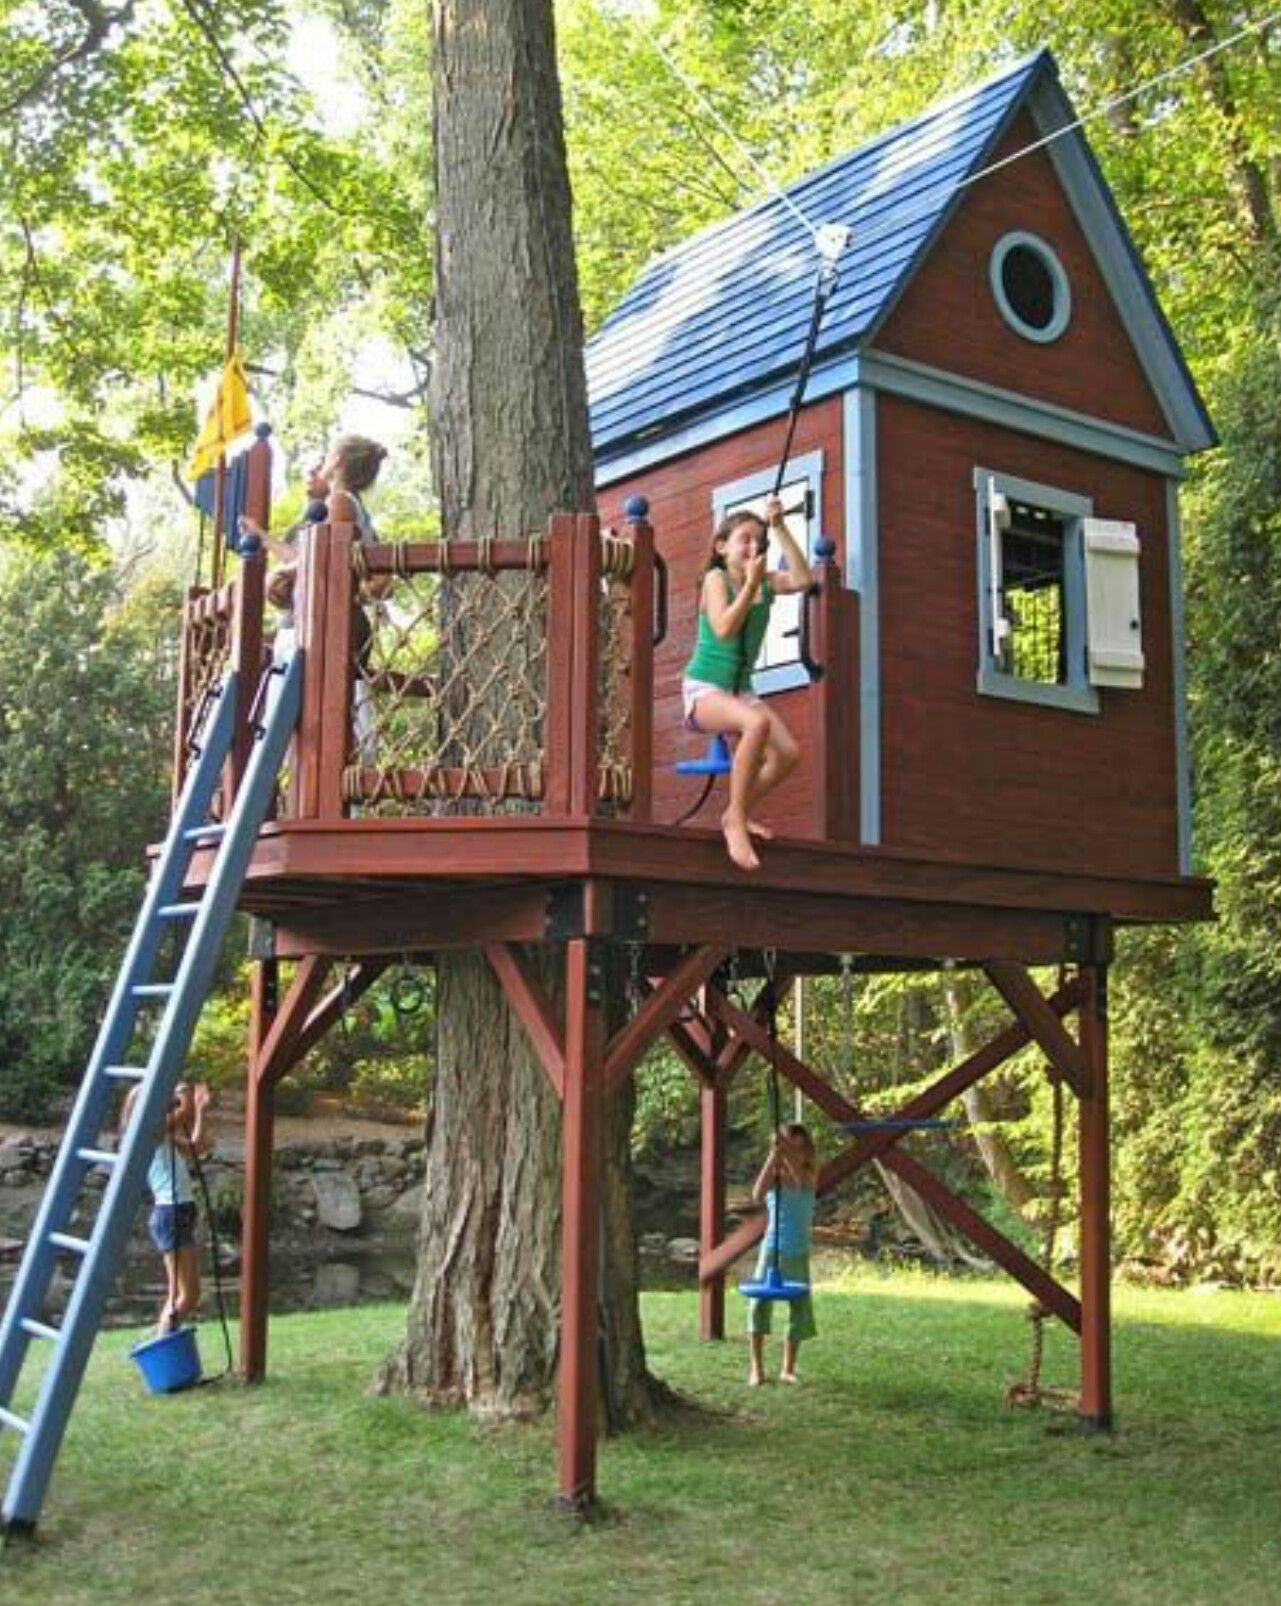 Charmant Bluebird Treehouse The Zip Line Ride Take Off Is From The Deck. The Long  Cable Is Anchor High Above To The Tree And The Other End Of The Cable Is  Secured To ...